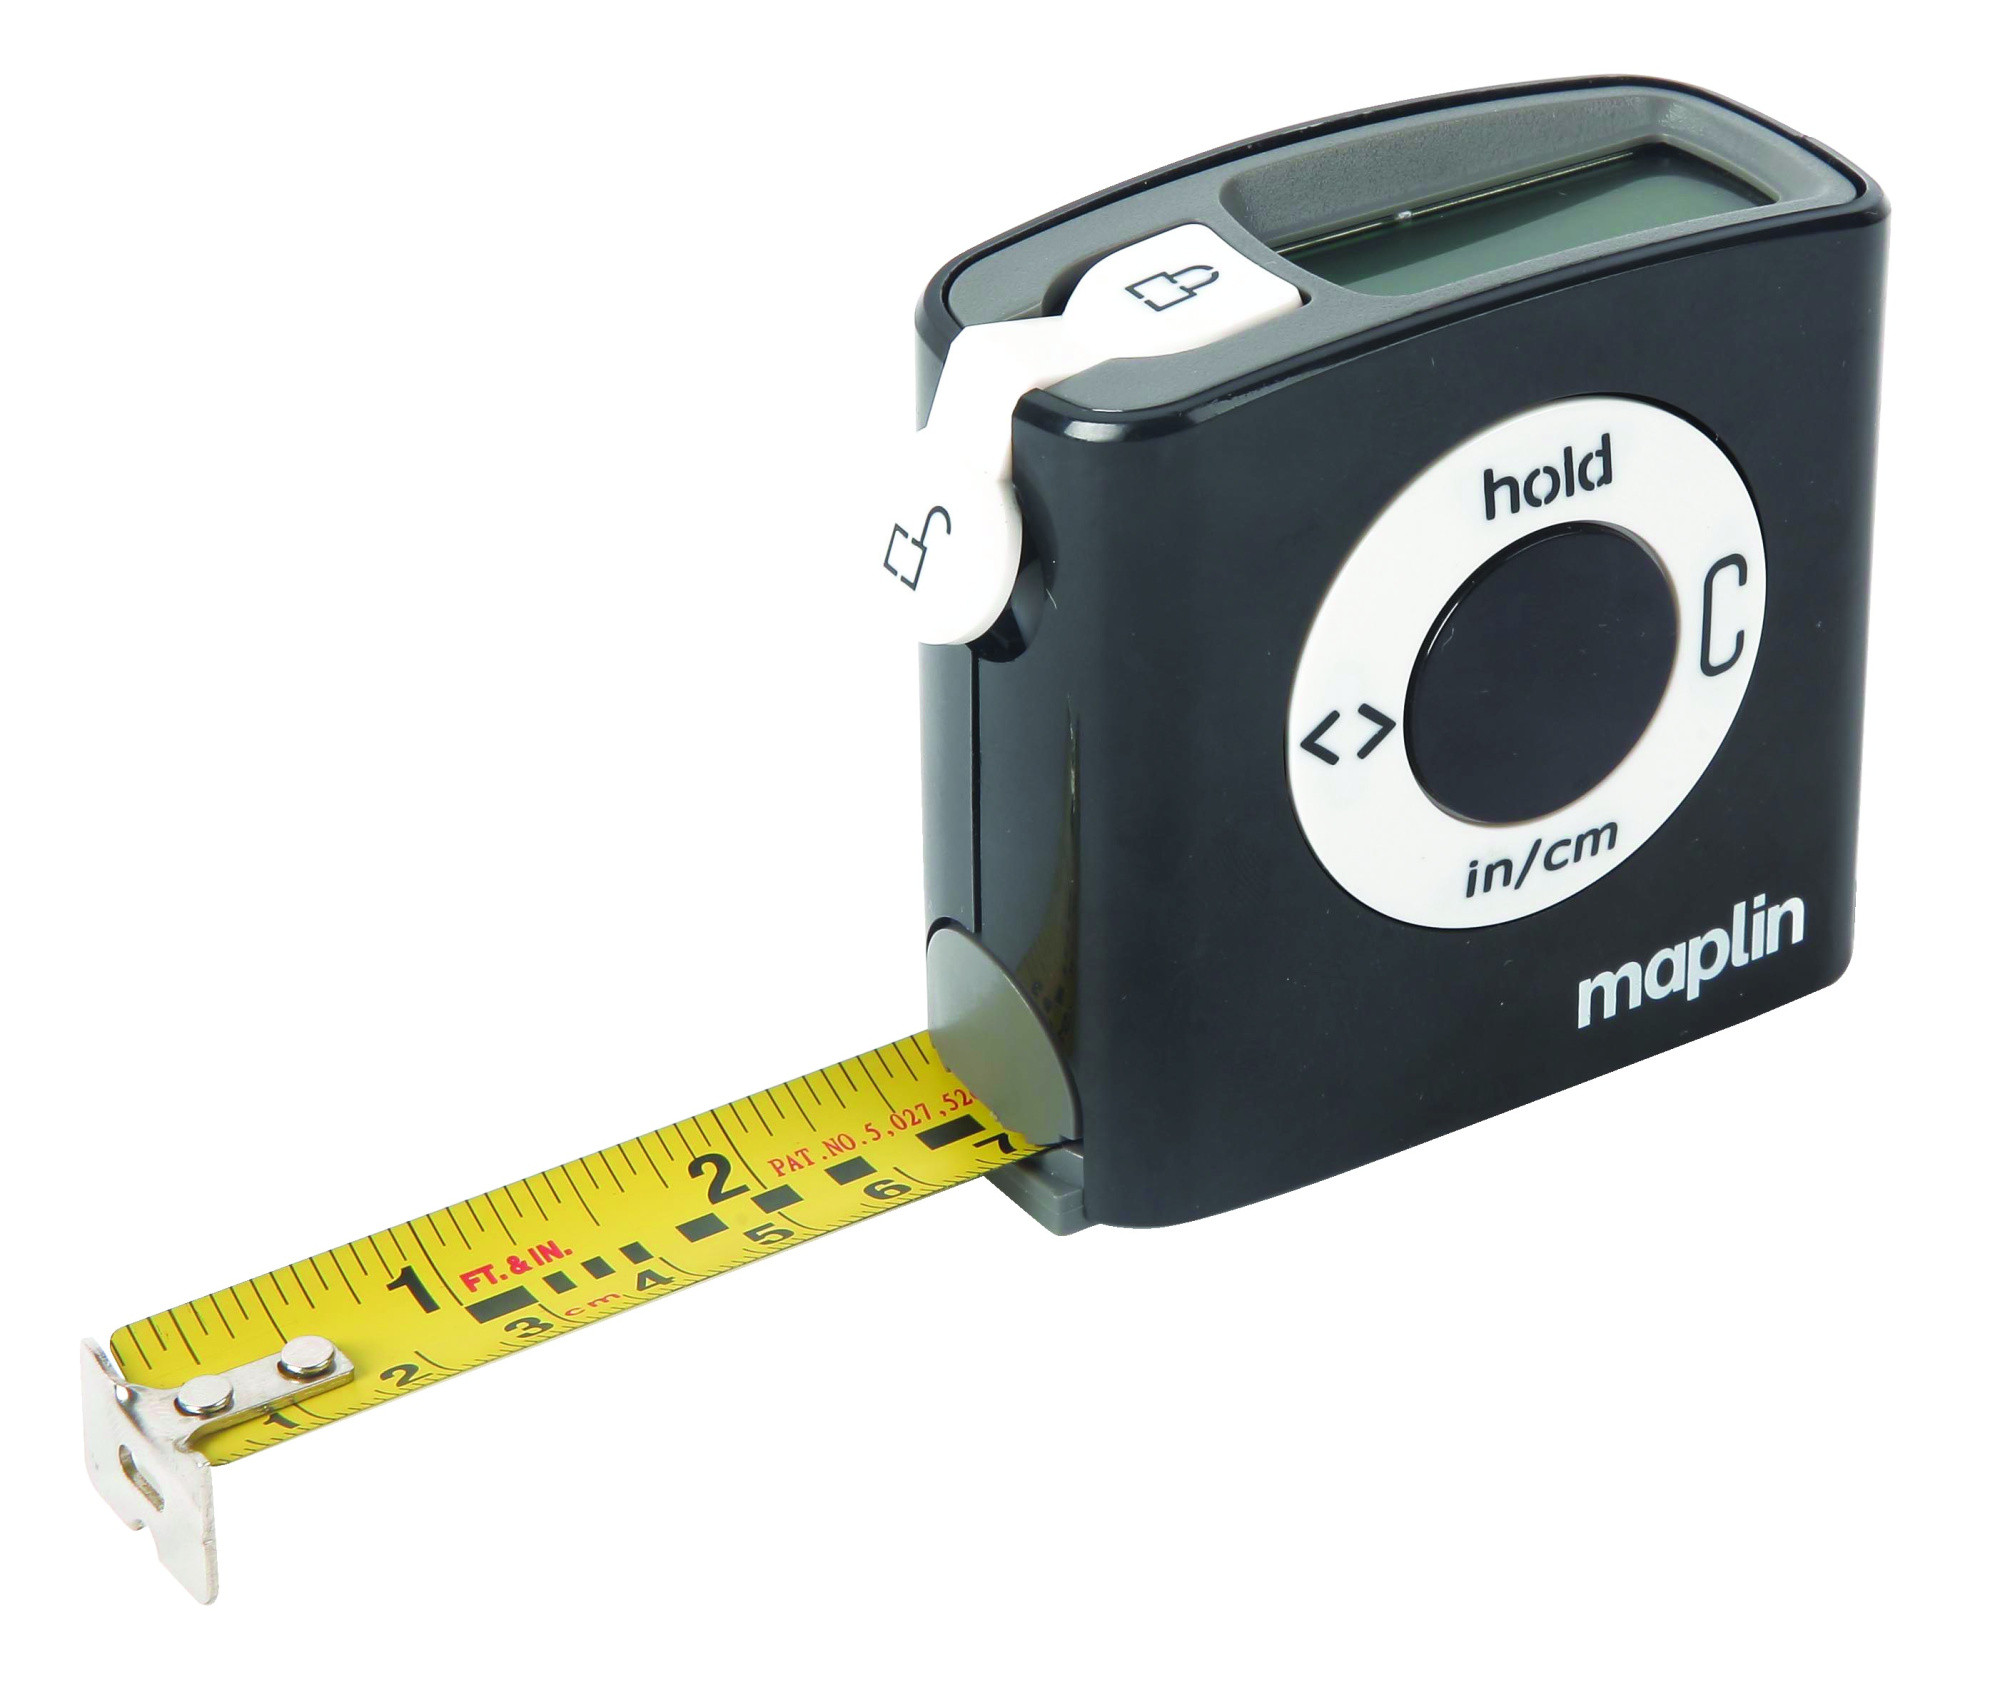 digital tape measure 5m metric imperial pause button automatic lock